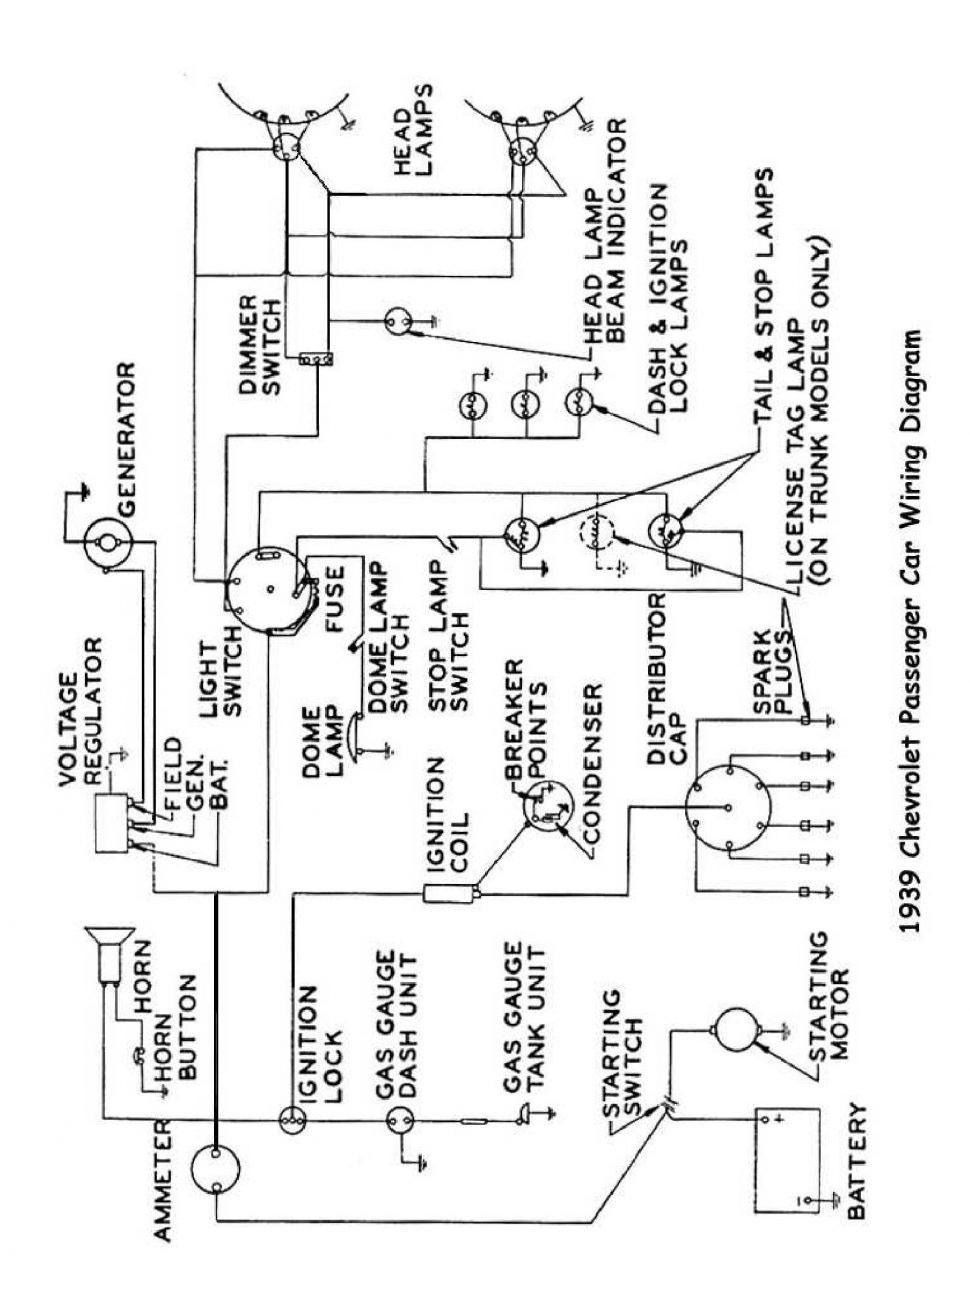 hight resolution of ultra remote car starter wiring diagram wiringdiagram org